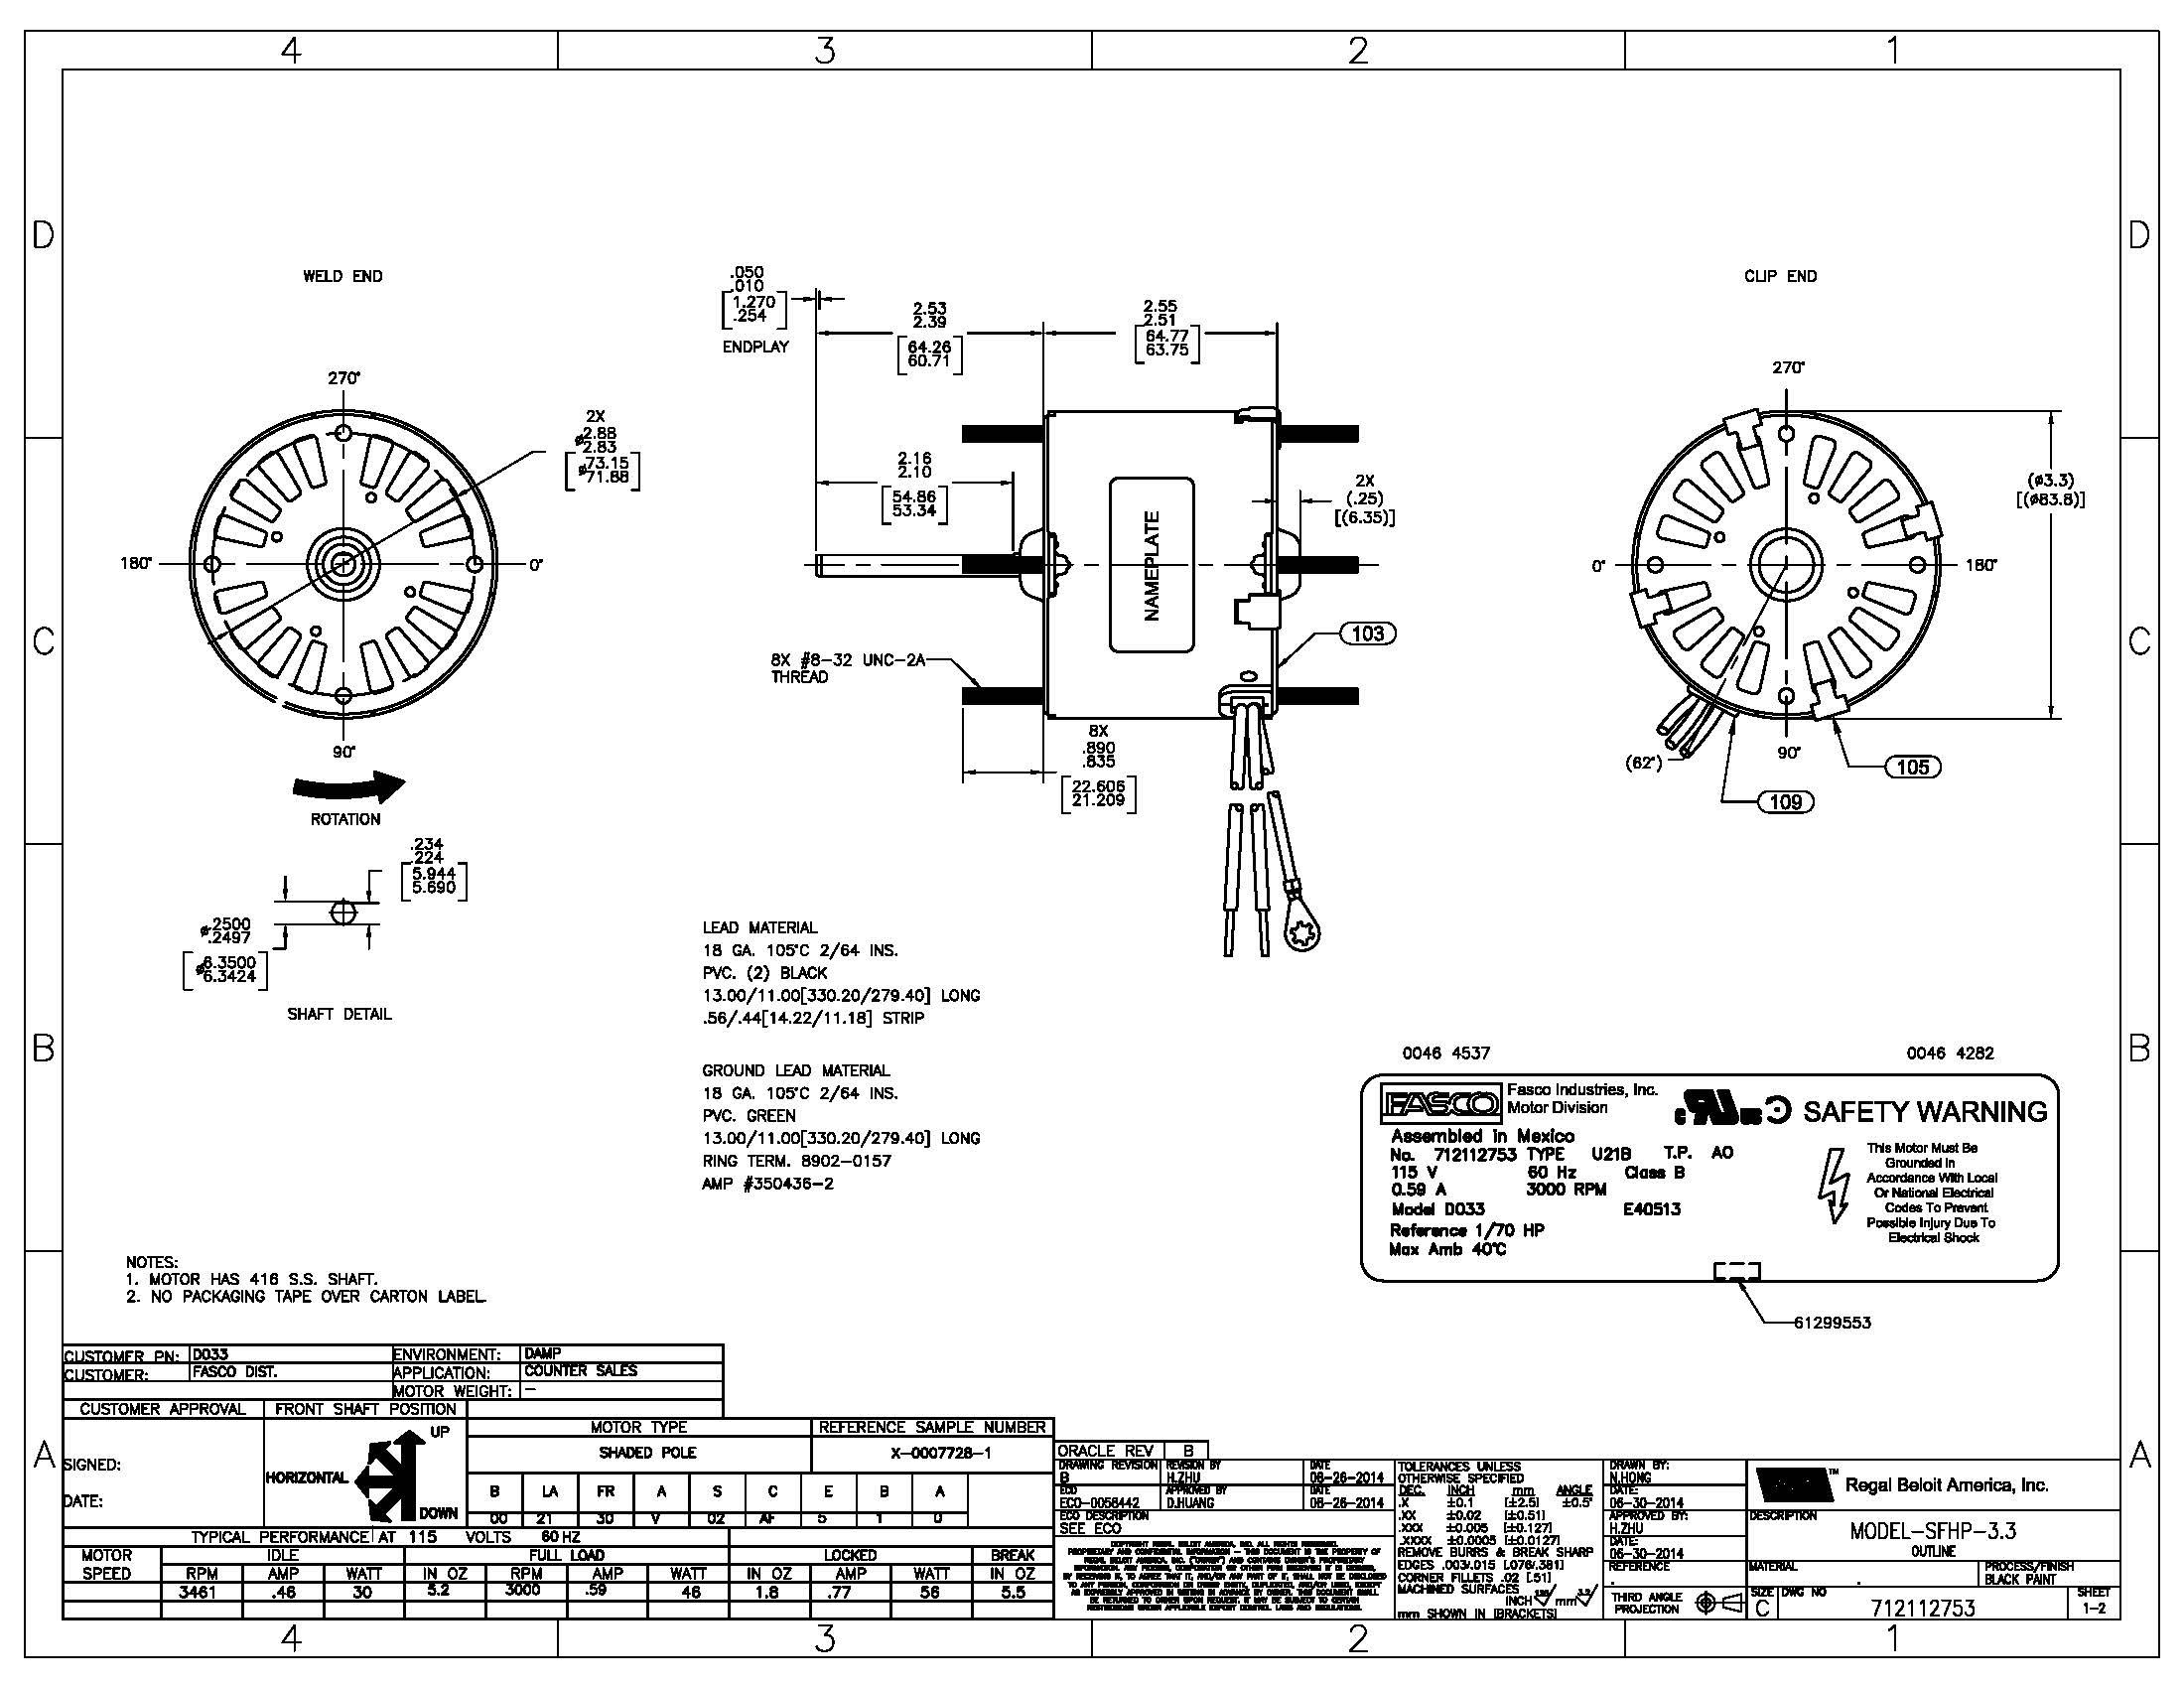 2 speed pool pump motor wiring diagram Download-Wiring Diagram Pool Pump Motor Valid Pentair Pool Pump Wiring Diagram Awesome Ao Smith 2 Speed 6-a